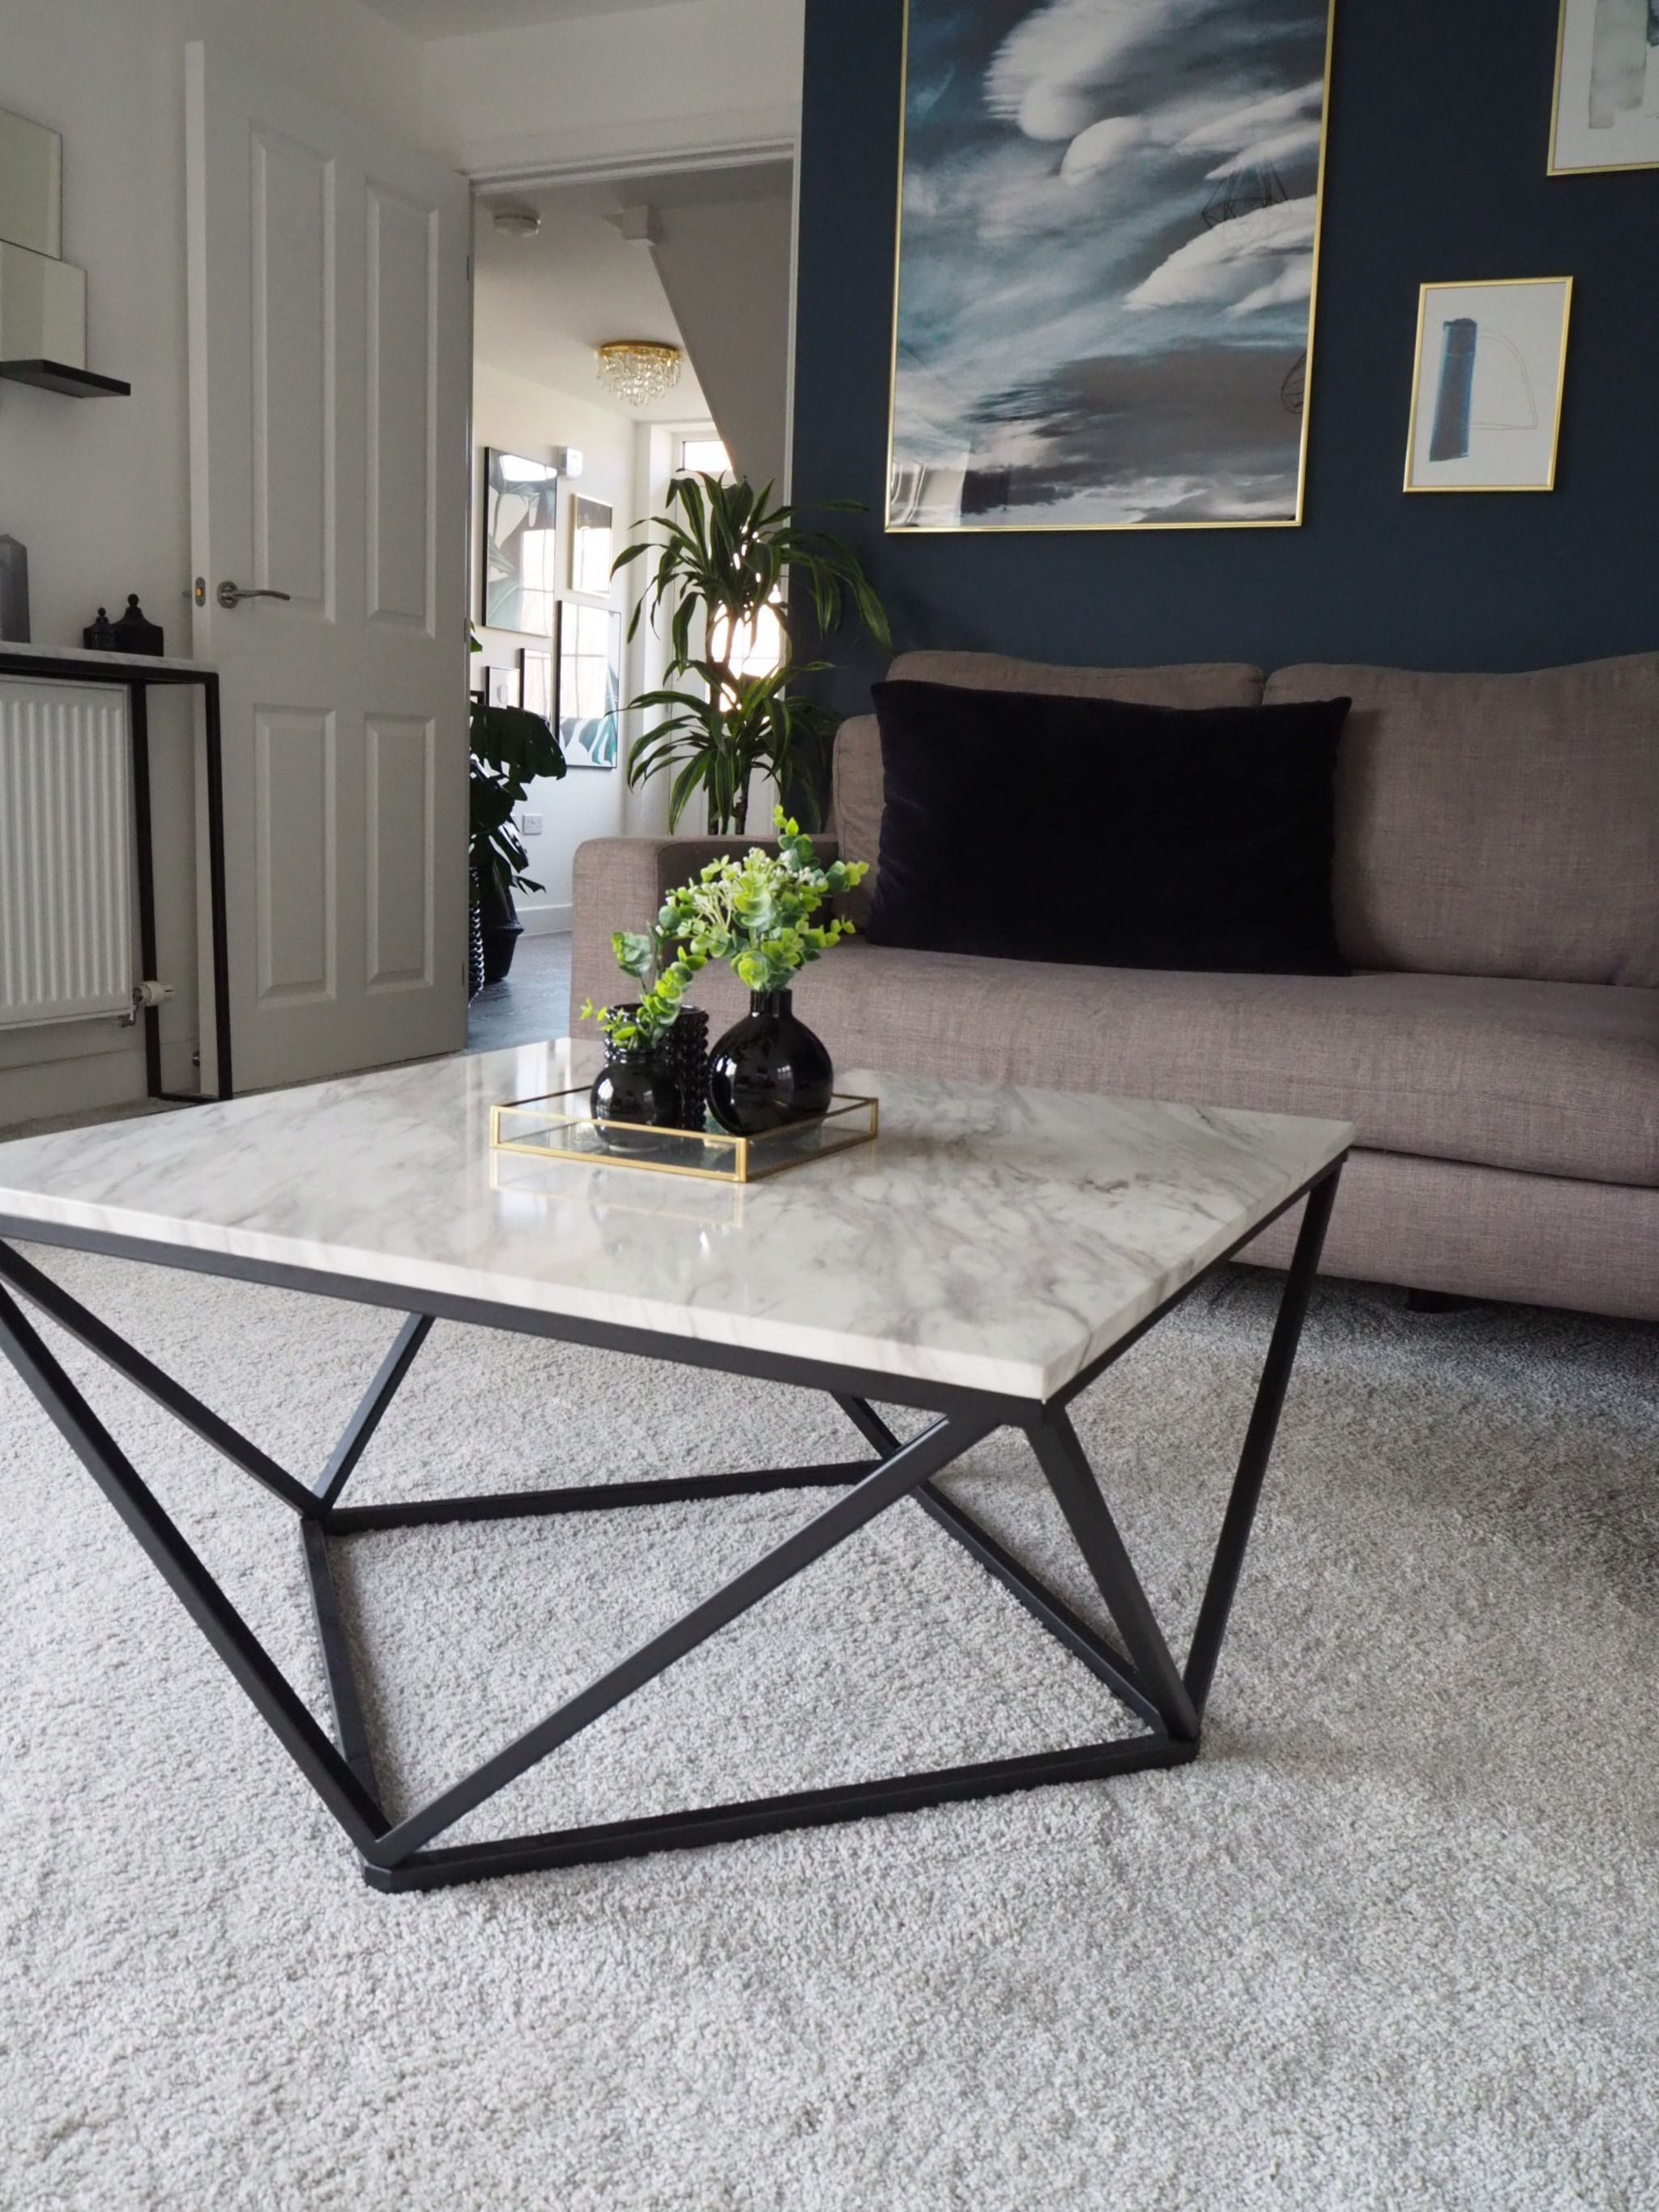 Living Room Accent Coffee Table With Marble Finish Top Coffeetables Coffeetableideas Marblecoffeeta Marble Tables Living Room Coffee Table Living Room Accents [ 2730 x 2048 Pixel ]